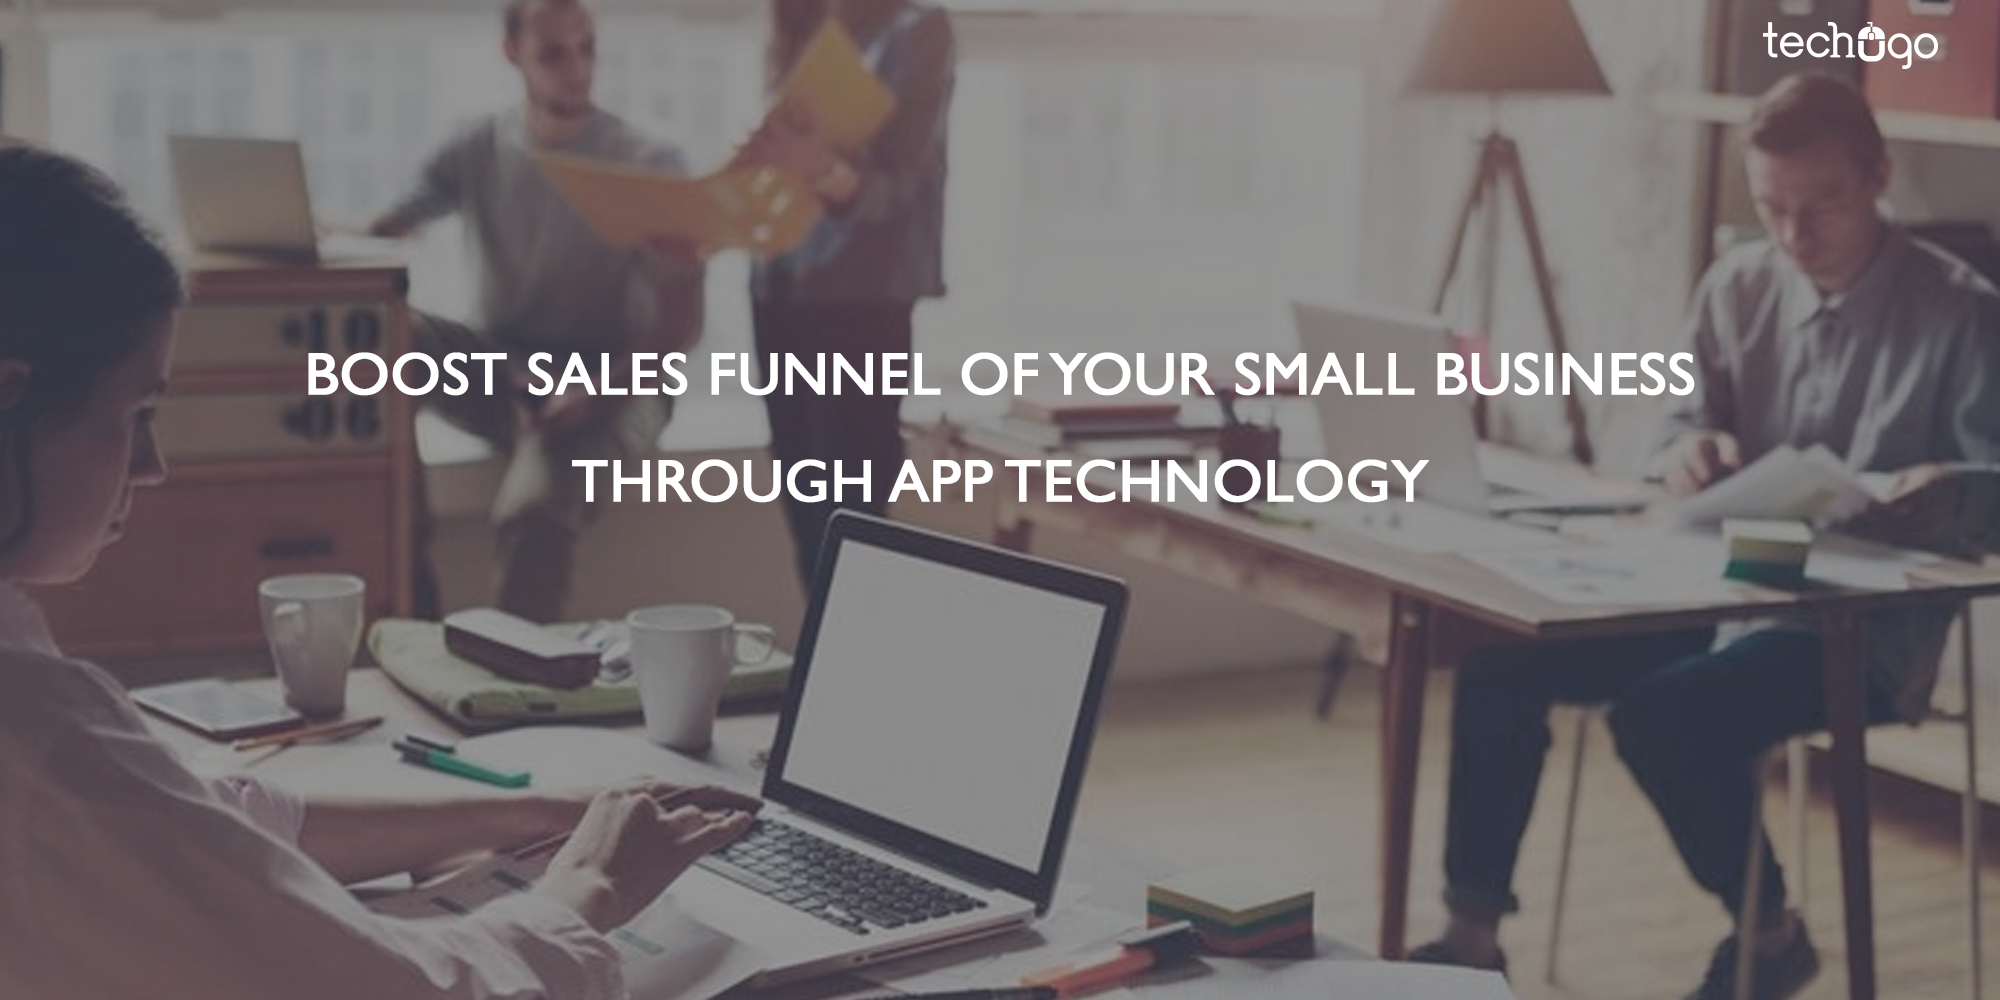 Boost Sales Funnel Of Your Small Business Through App Technology